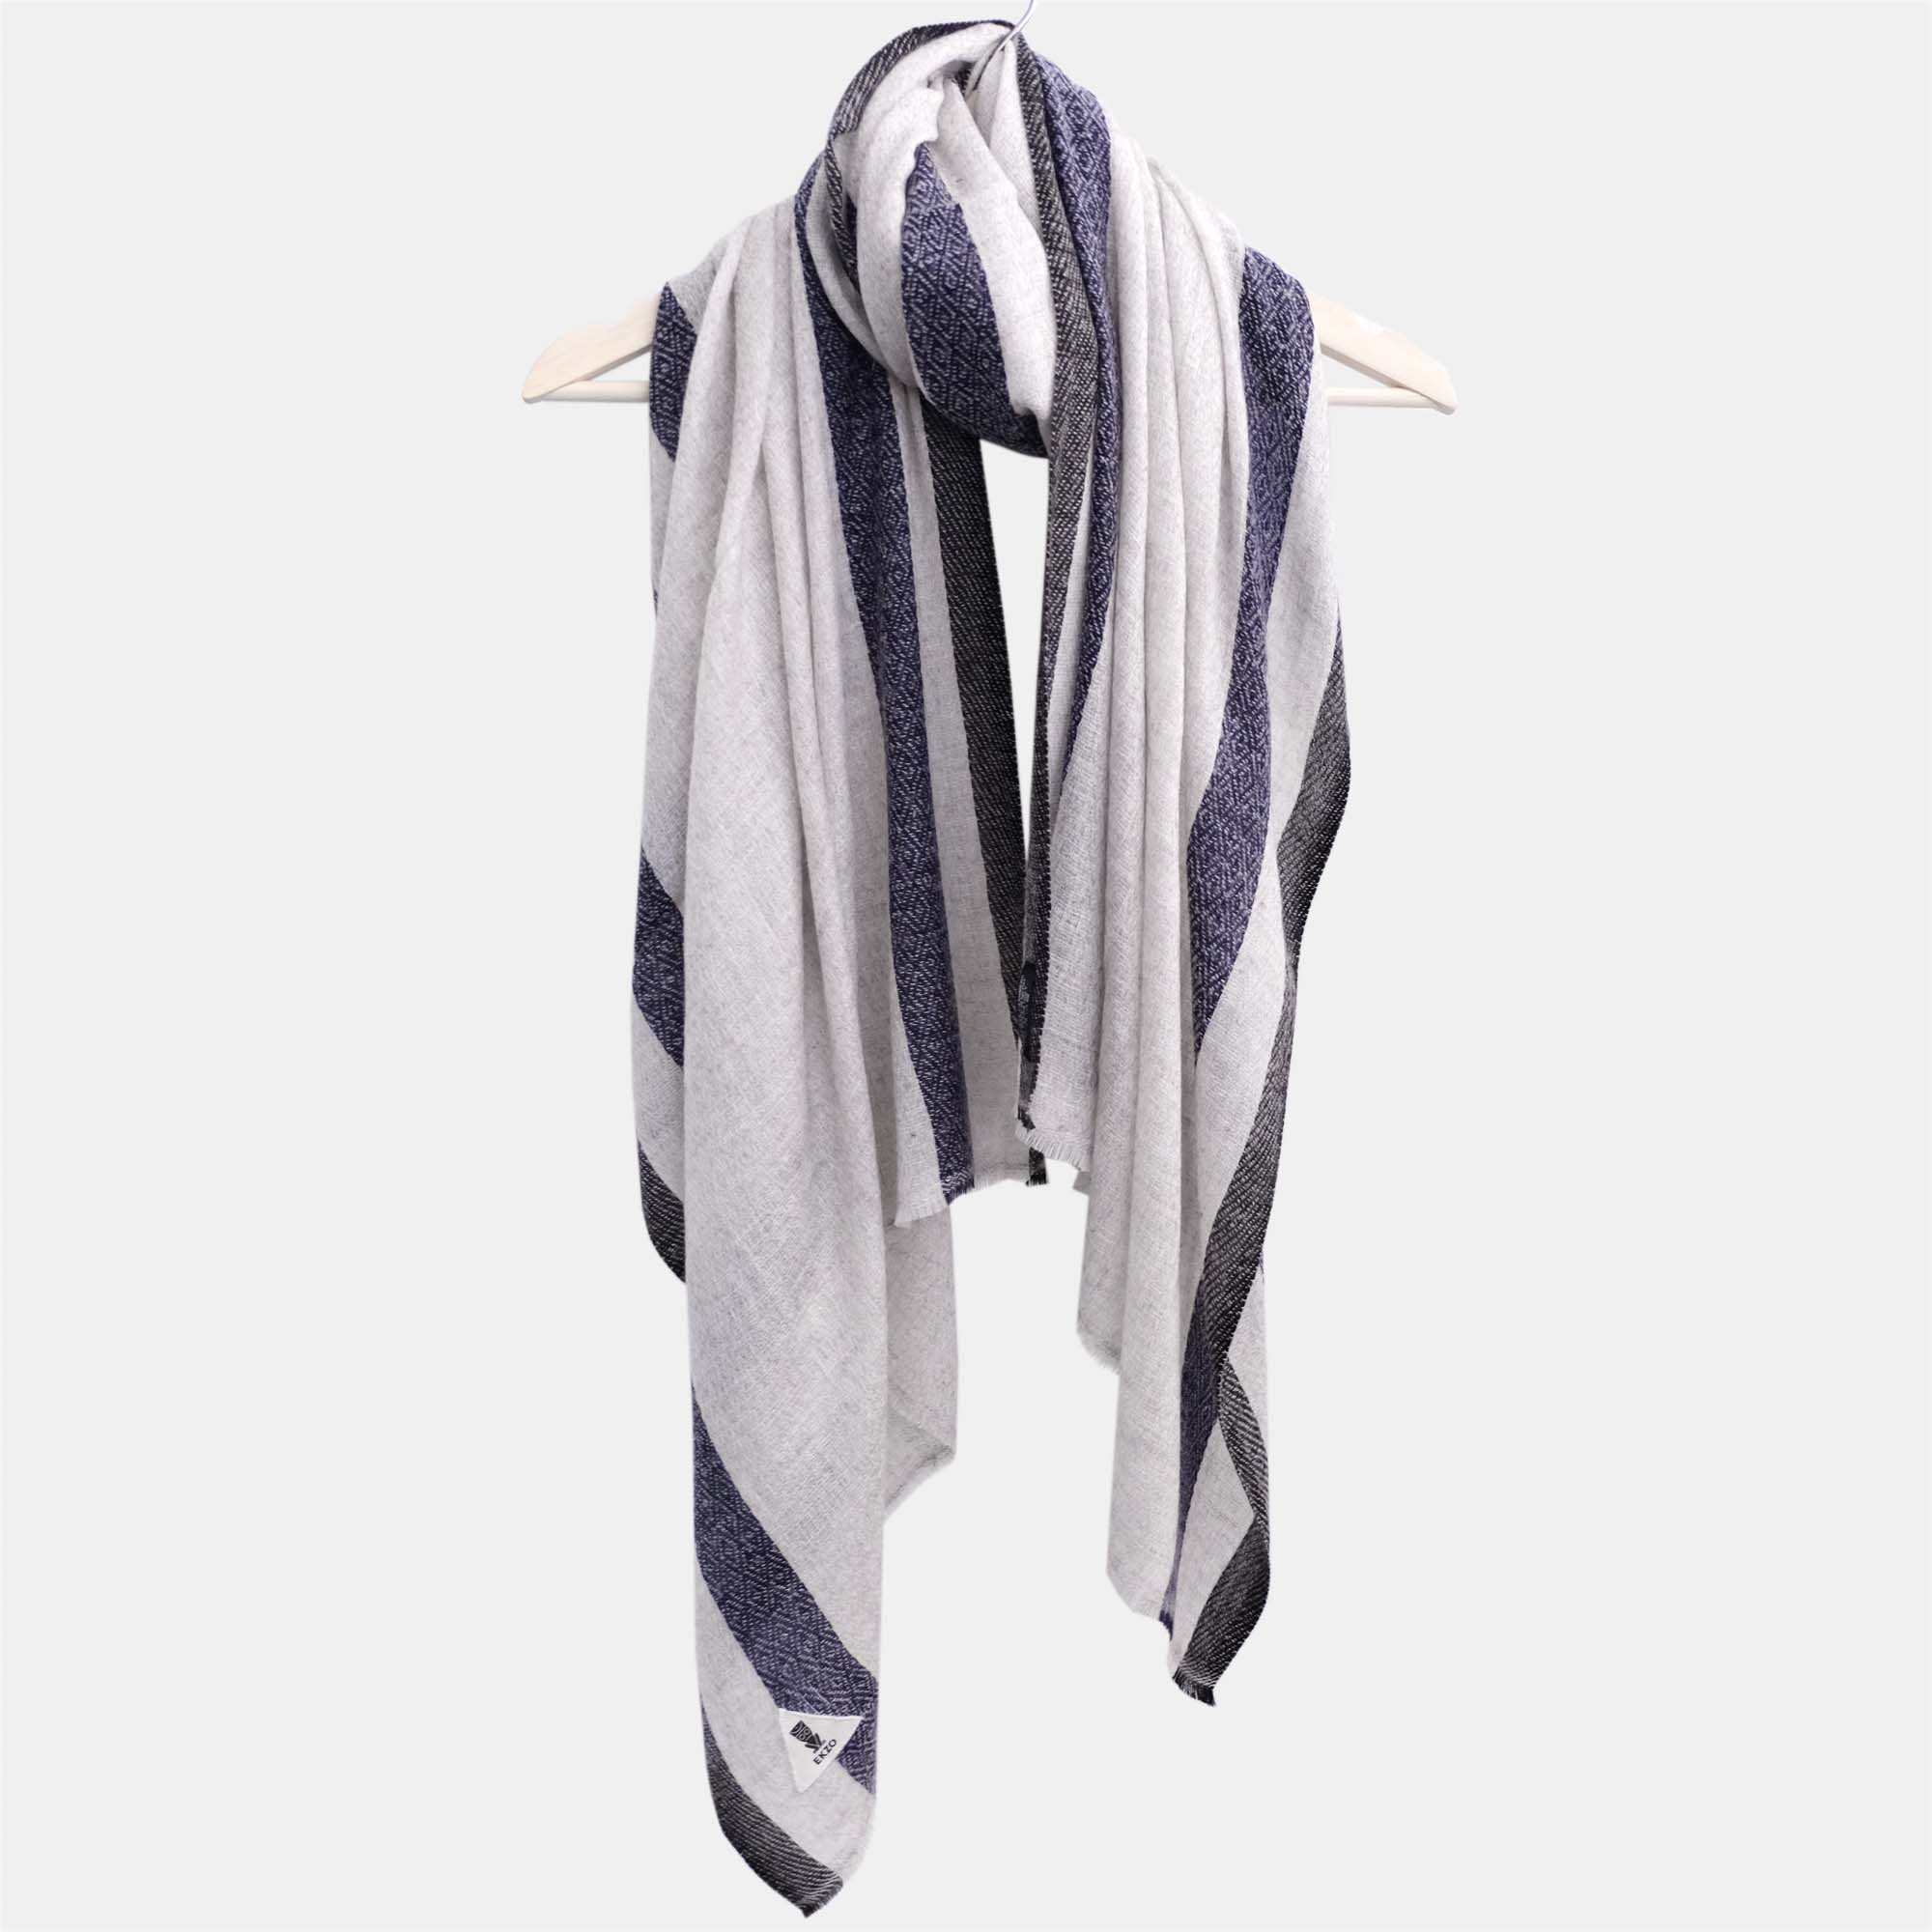 Scarf - Blue VS Black - EKZO